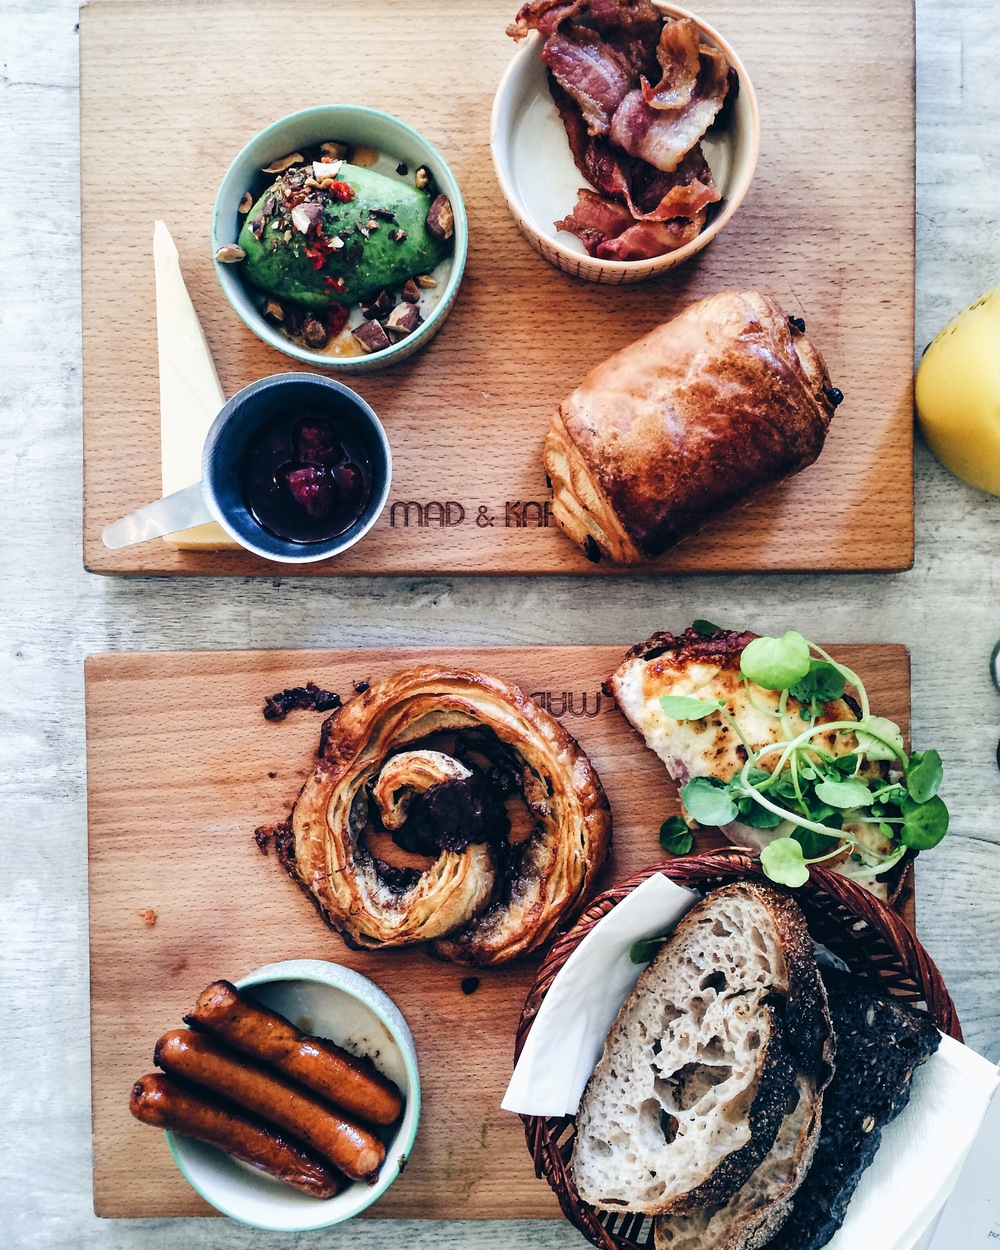 Brunch at Mad & Kaffe, Copenhagen